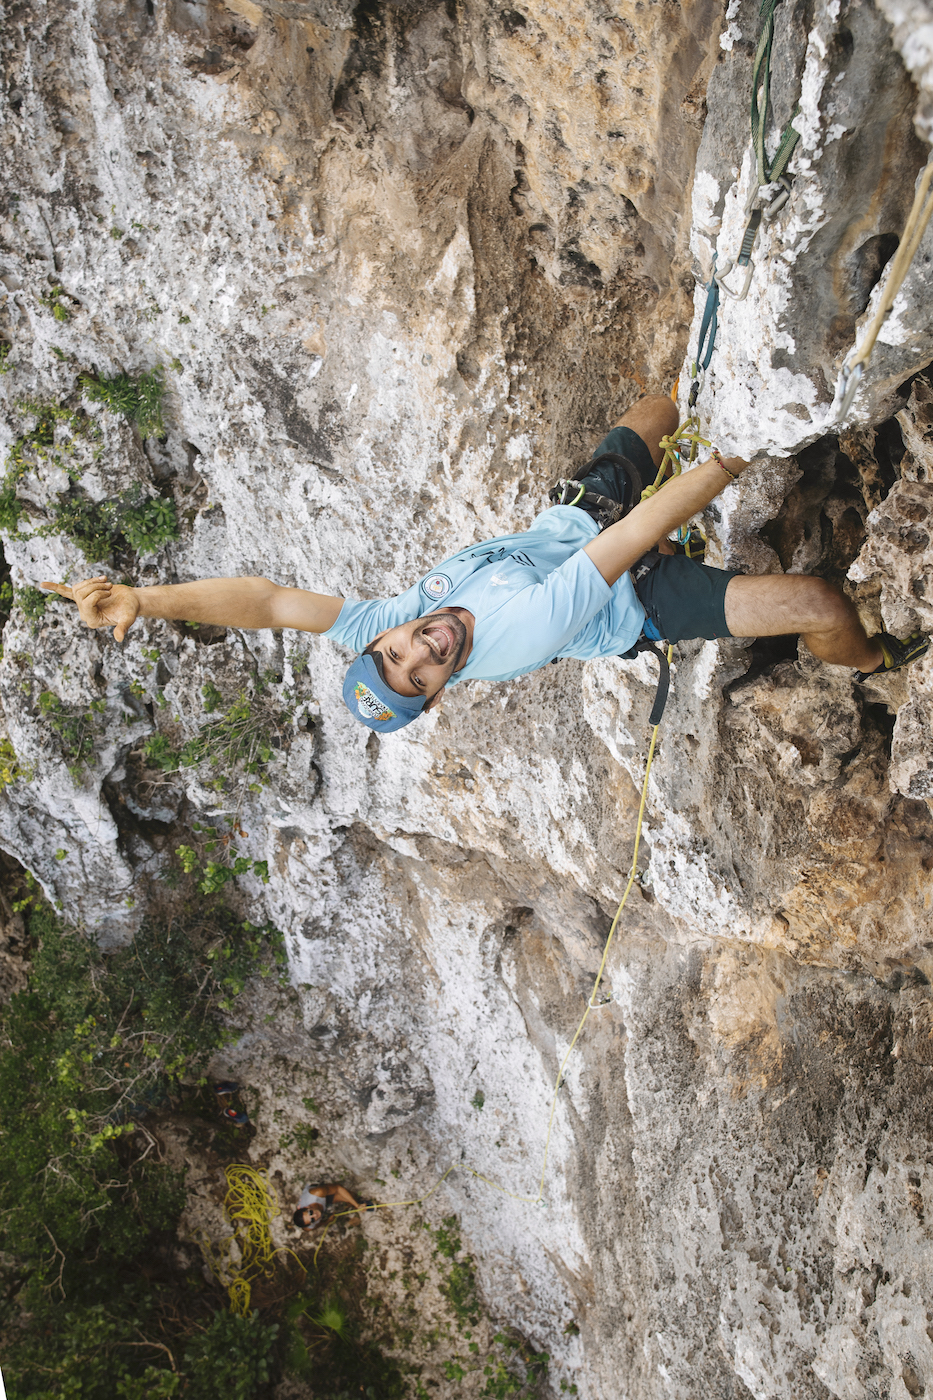 A person smiles at the camera while rock climbing in Jamaica